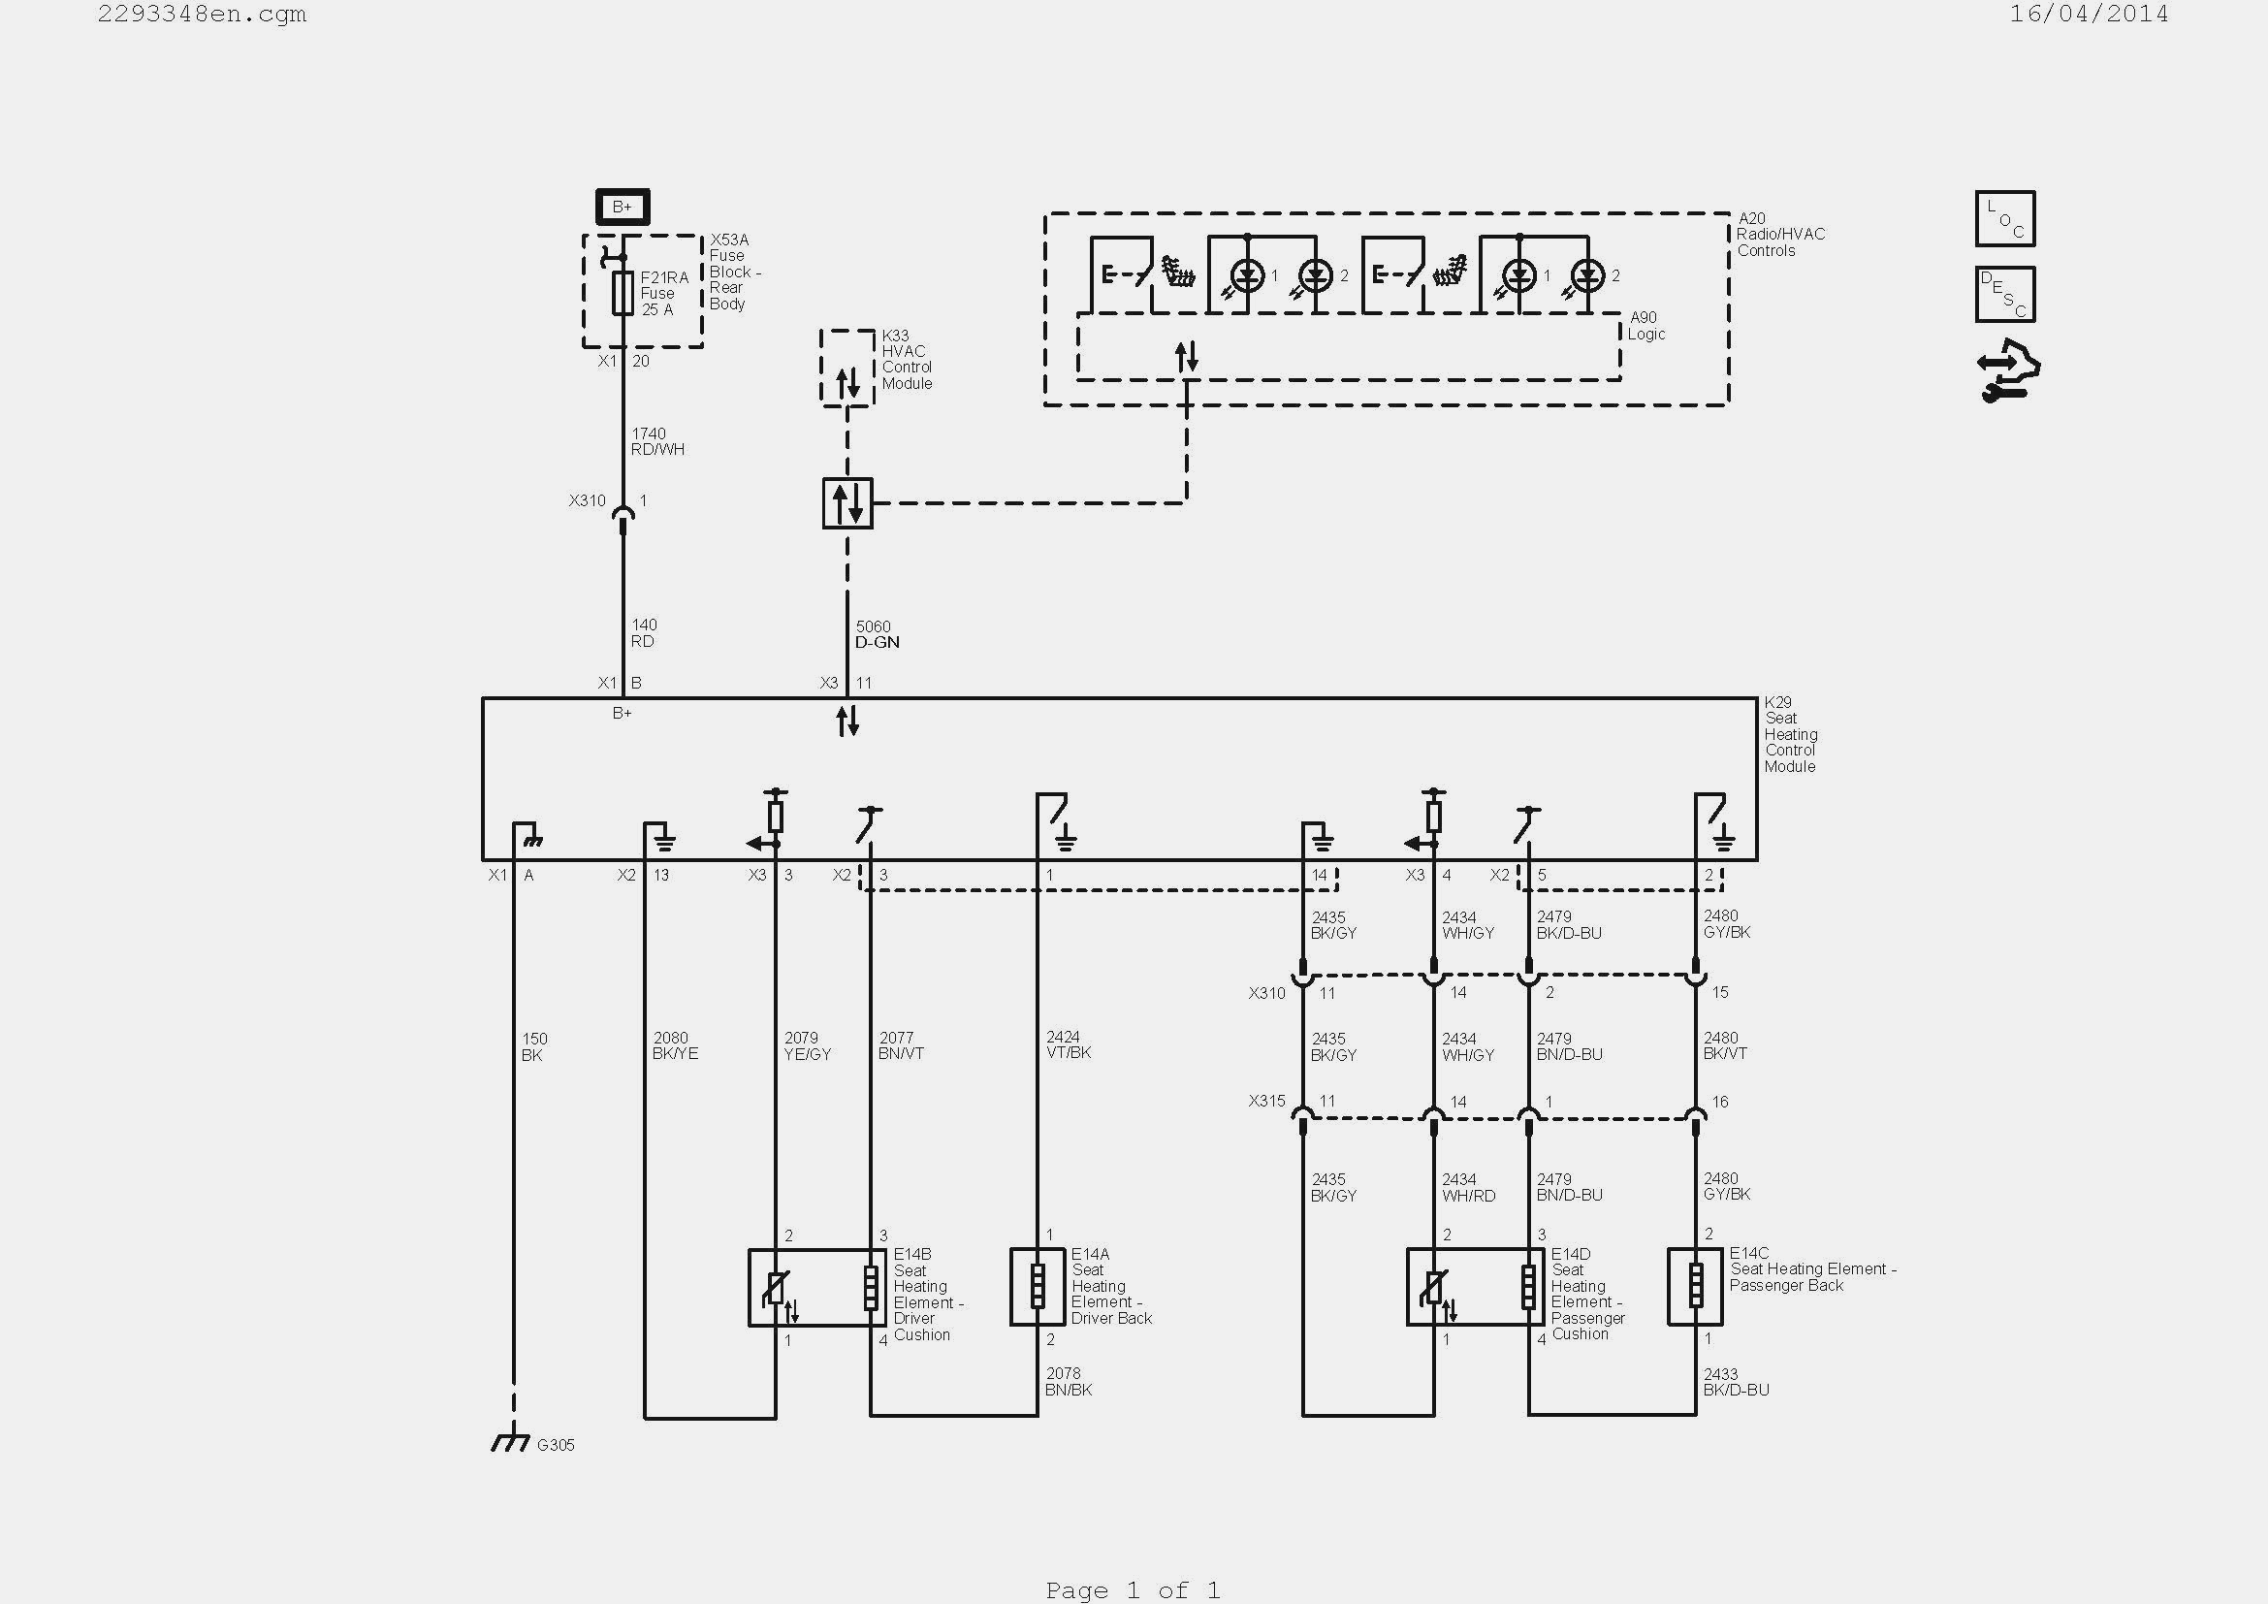 [TBQL_4184]  KZ_7048] Wiring Diagram Additionally Overhead Crane Wiring Diagram On Demag  Download Diagram | Overhead Crane Demag Wiring Diagram Pdf |  | Spoat Over Epete Elae Jebrp Mohammedshrine Librar Wiring 101